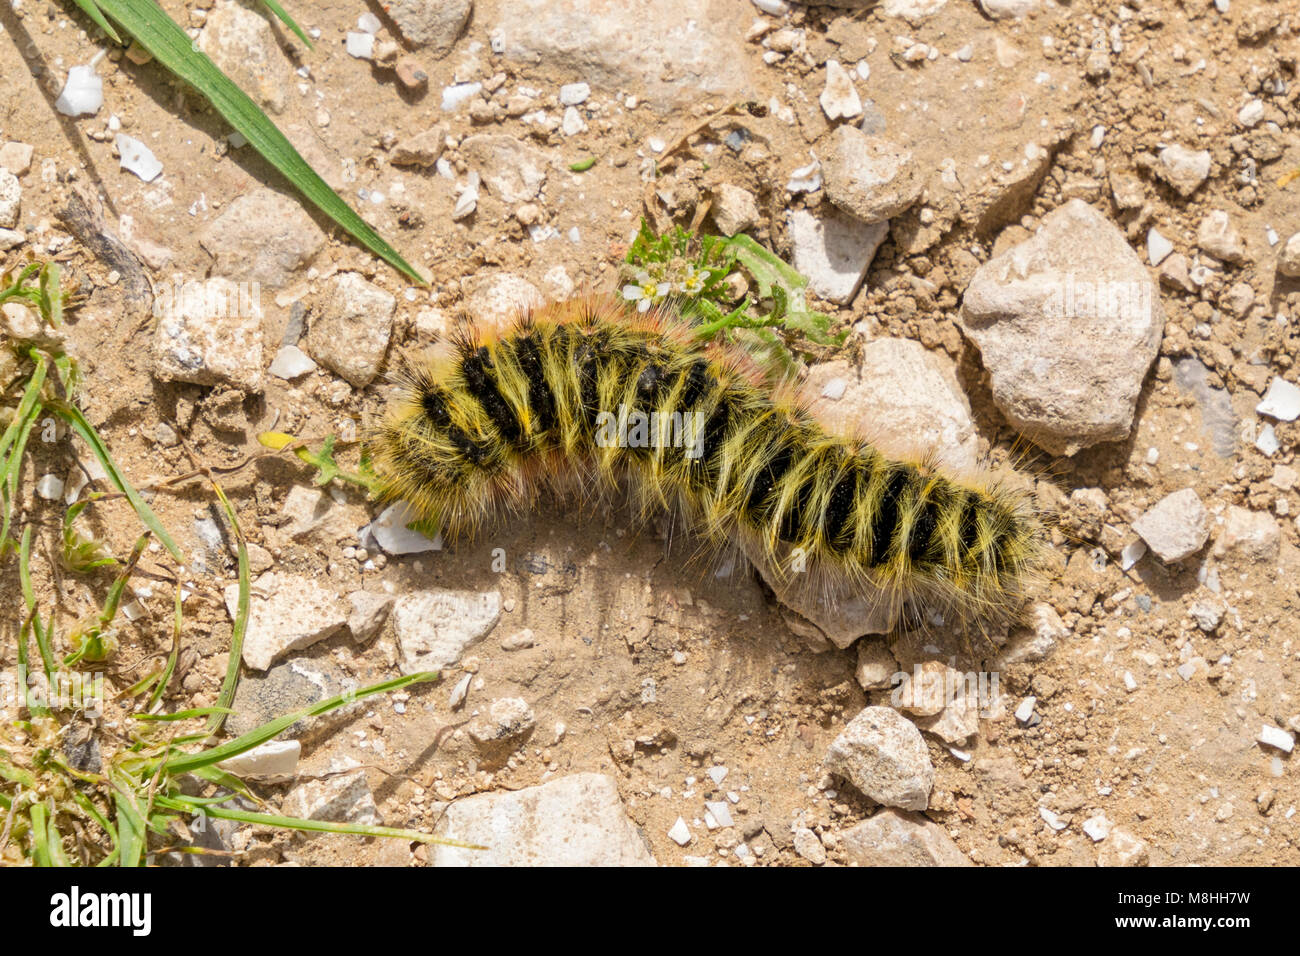 yellow and black banded woolly bear larva eating a leaf - Stock Image